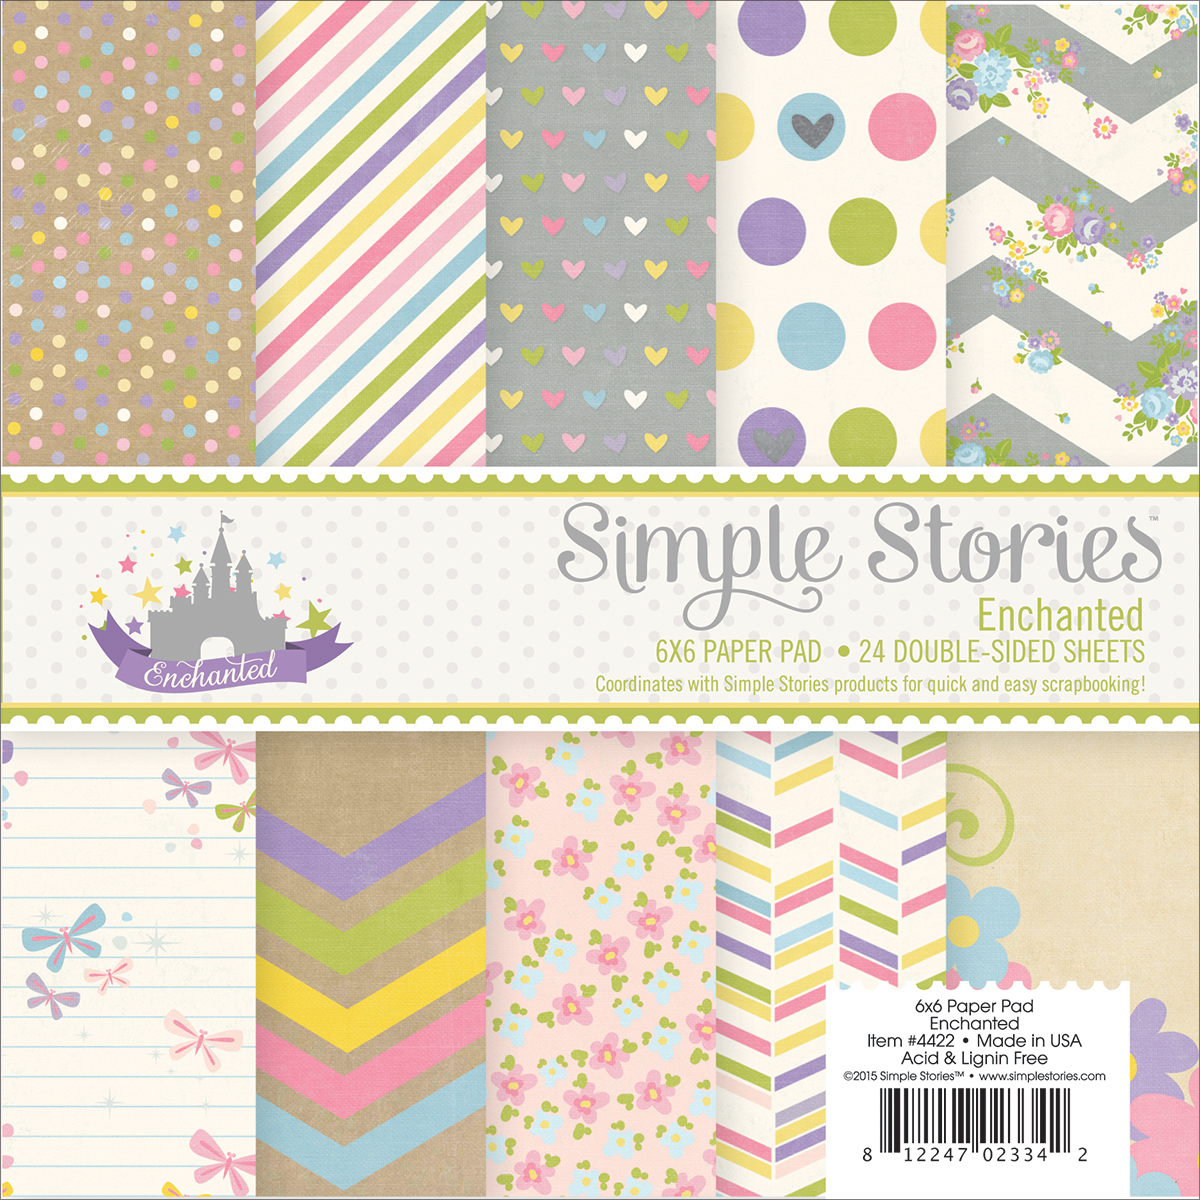 Simple Stories Enchanted Collection 6 X 6 Paper Pad